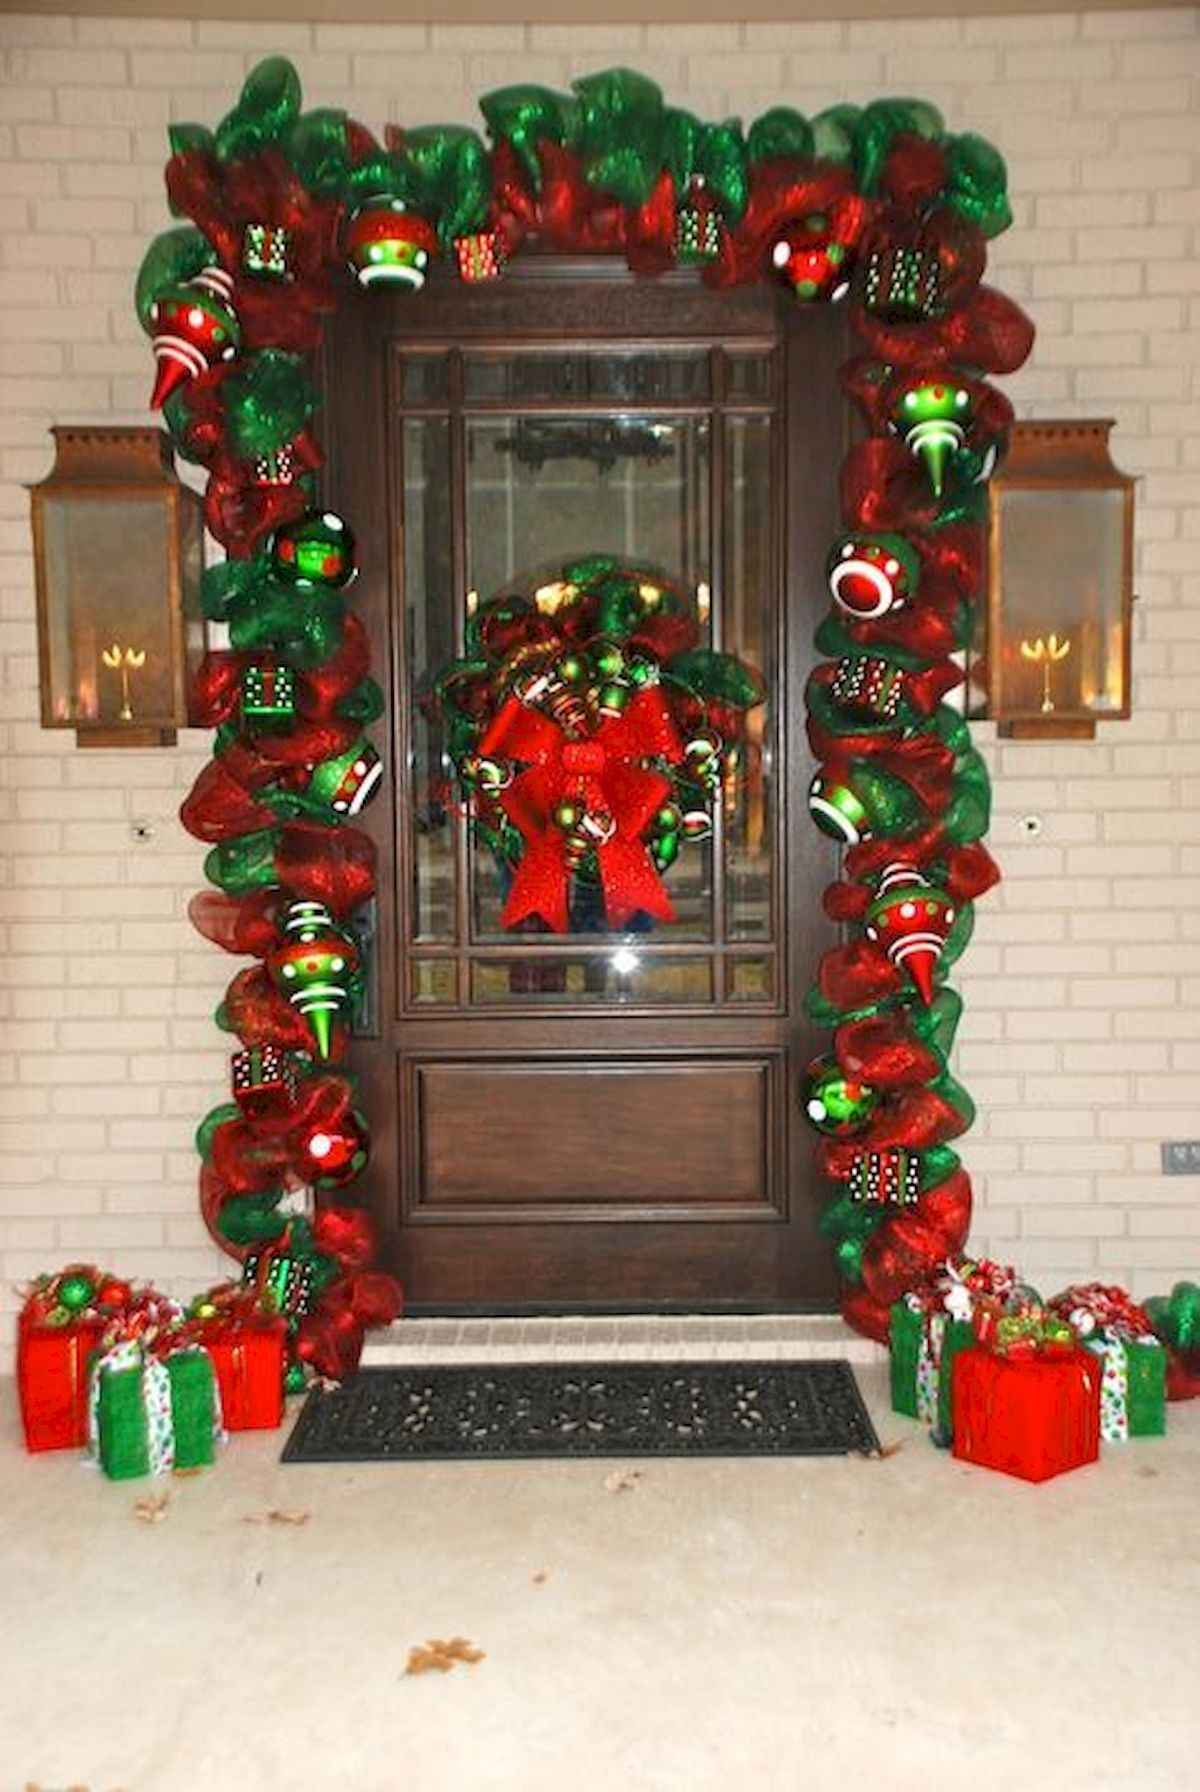 50 stunning front porch christmas lights decorations ideas (22)